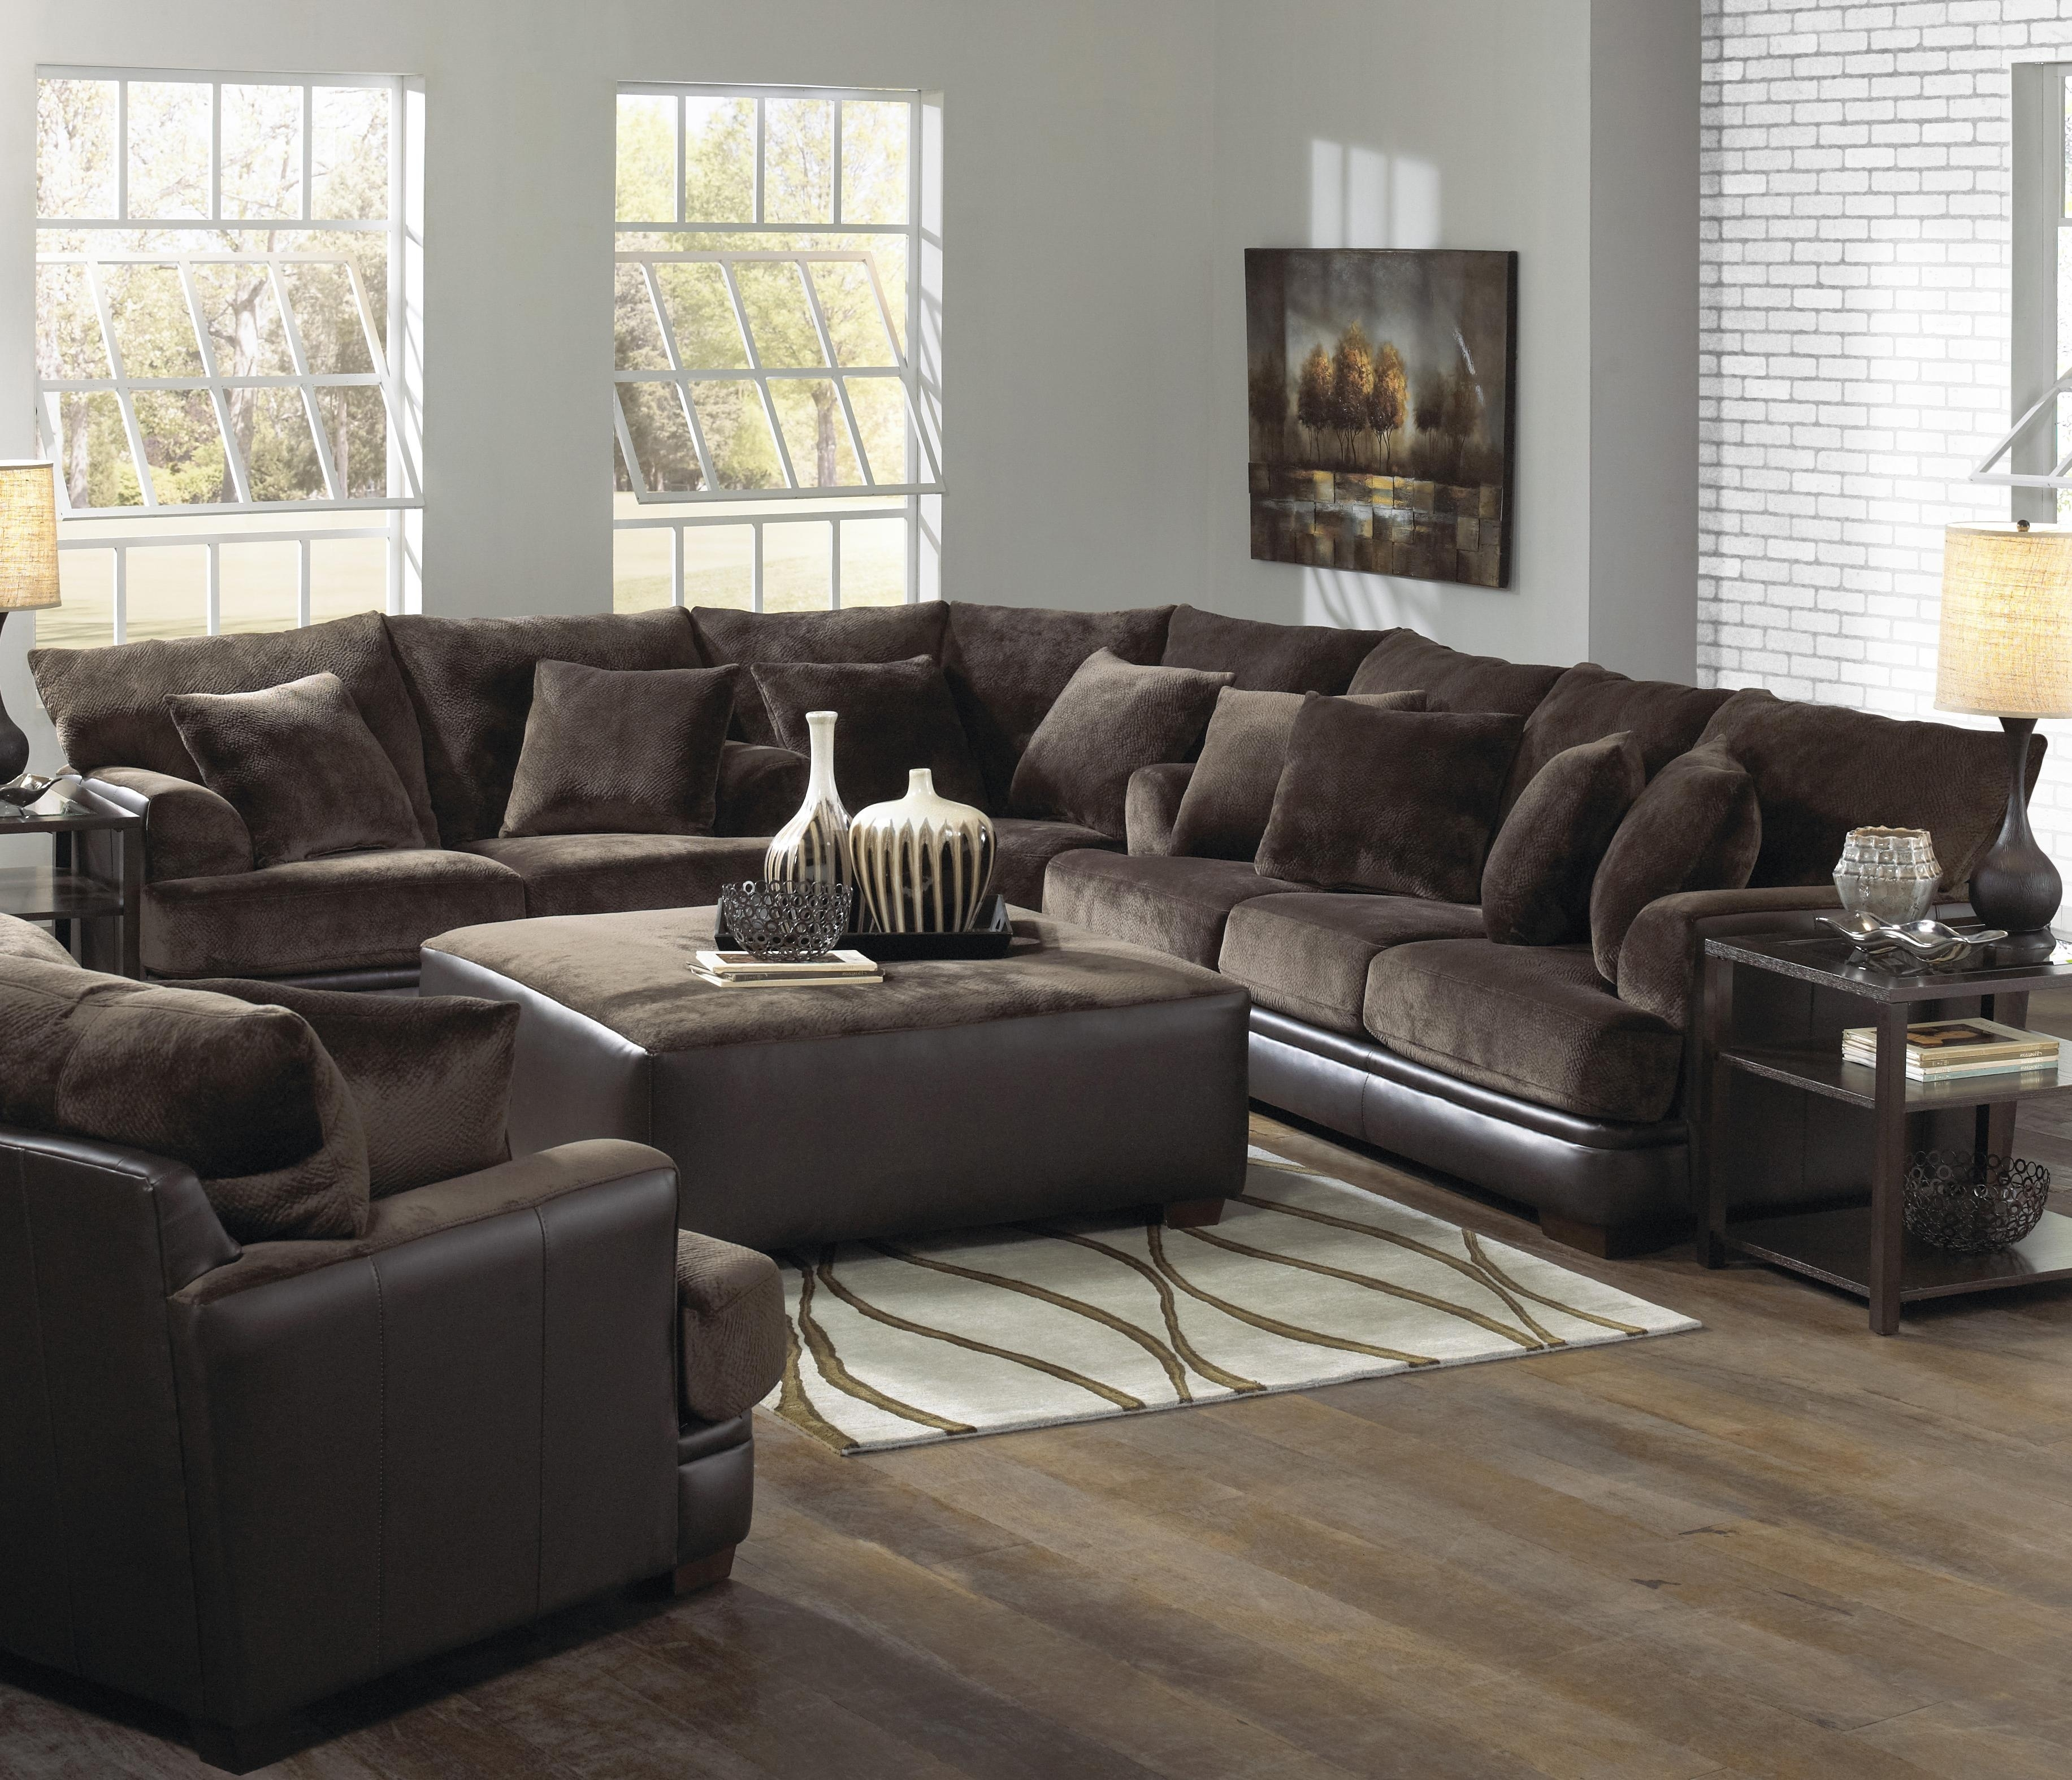 Best Coffee Table For U Shaped Sectional – Saomc (View 8 of 10)